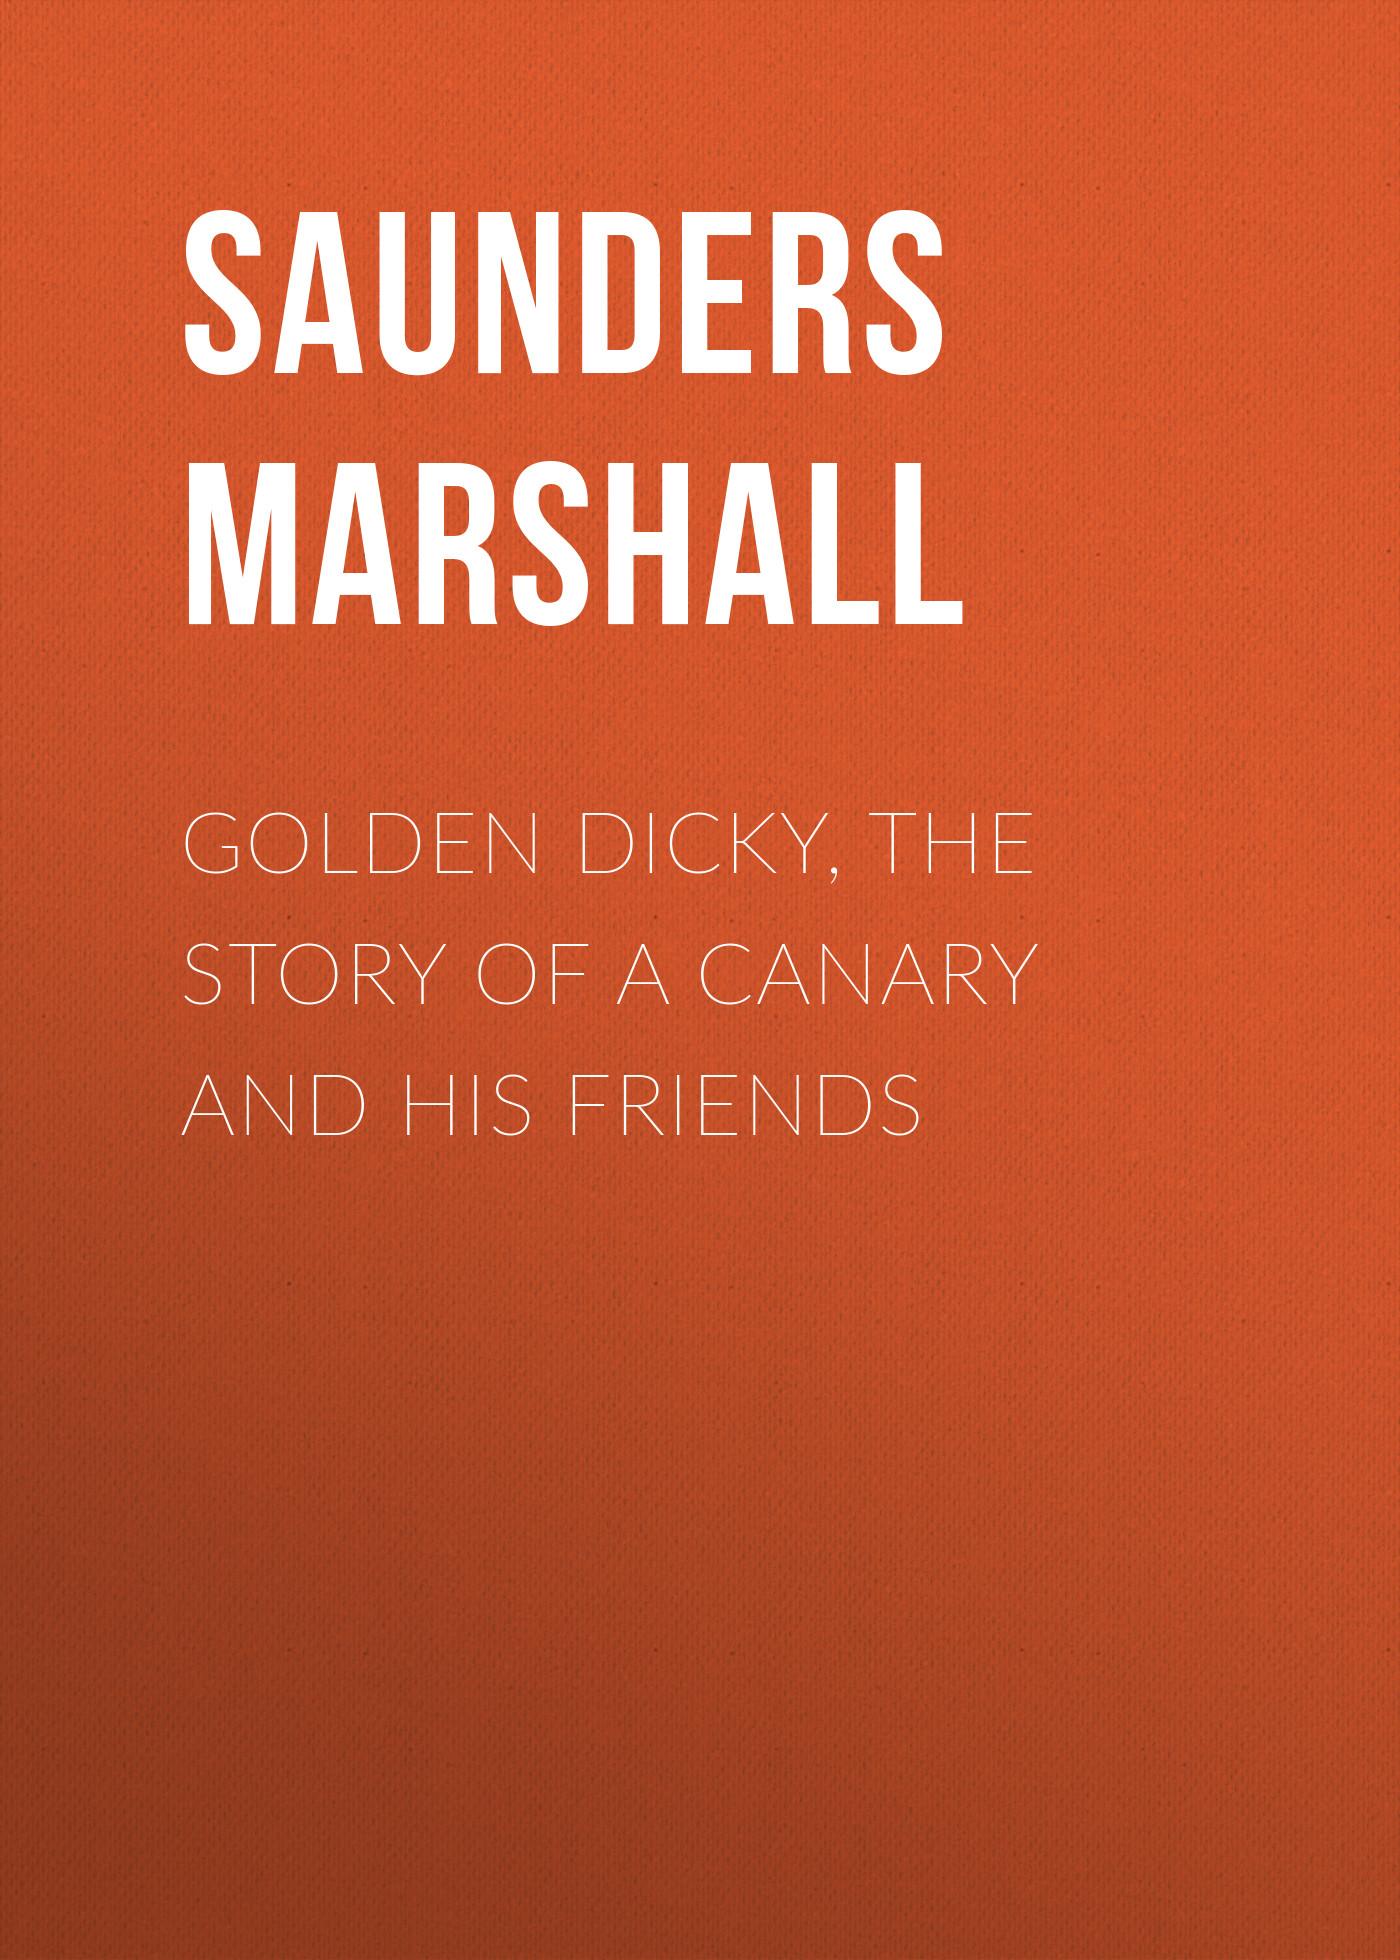 Saunders Marshall Golden Dicky, The Story of a Canary and His Friends